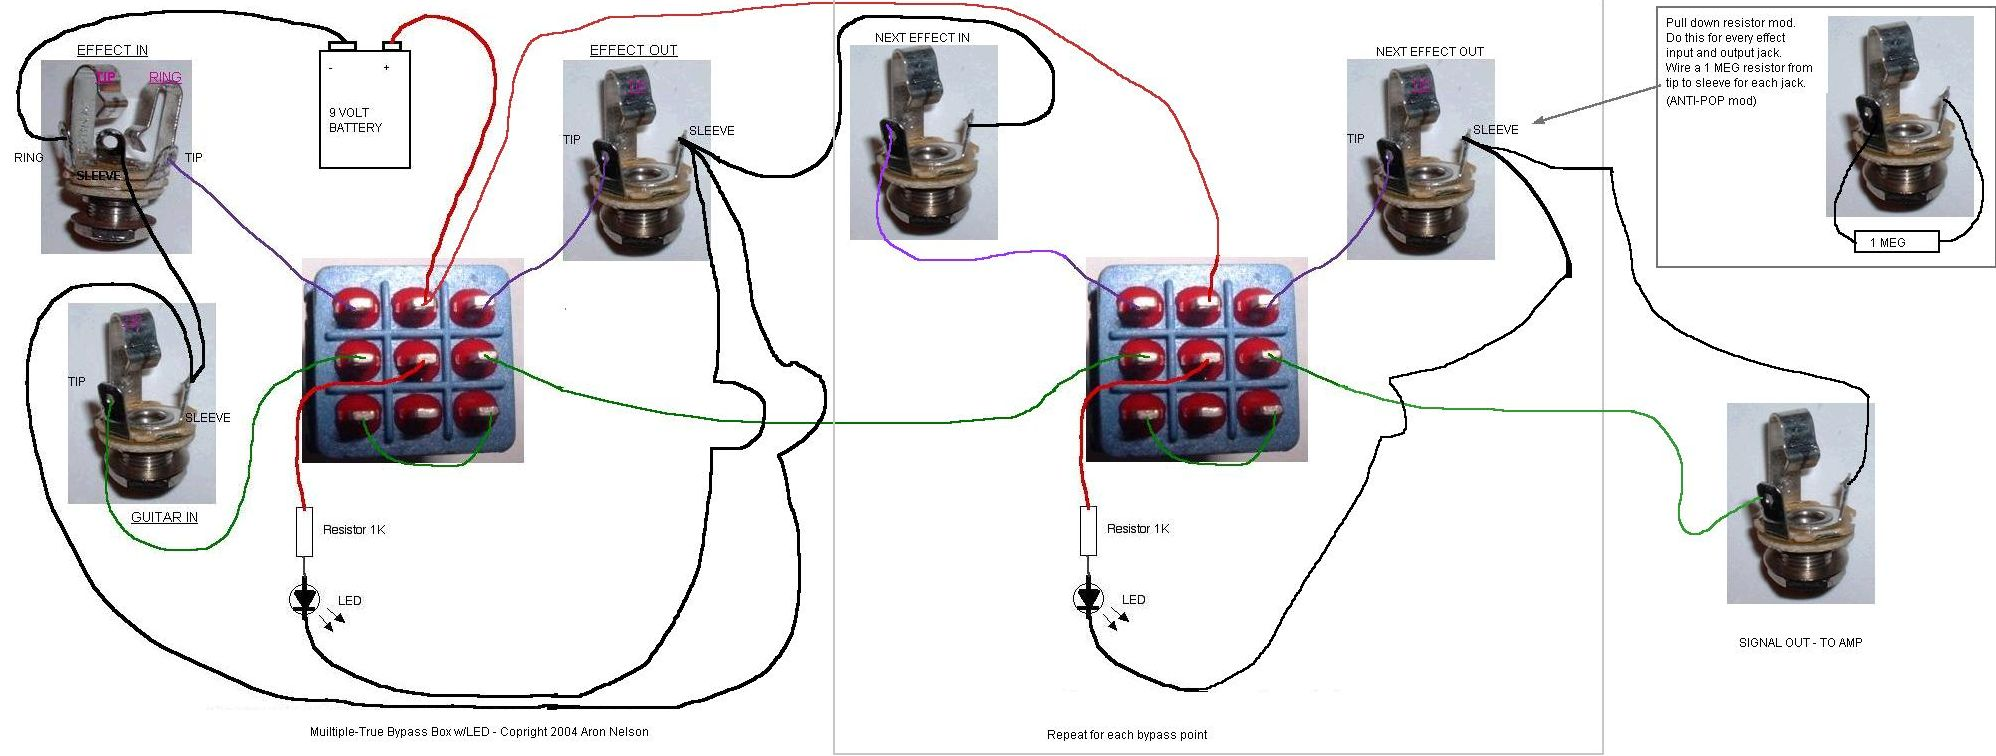 Brand New To Diy Effects Need Advice True Bypass Wiring Diagram Http Pedals Schems Multi